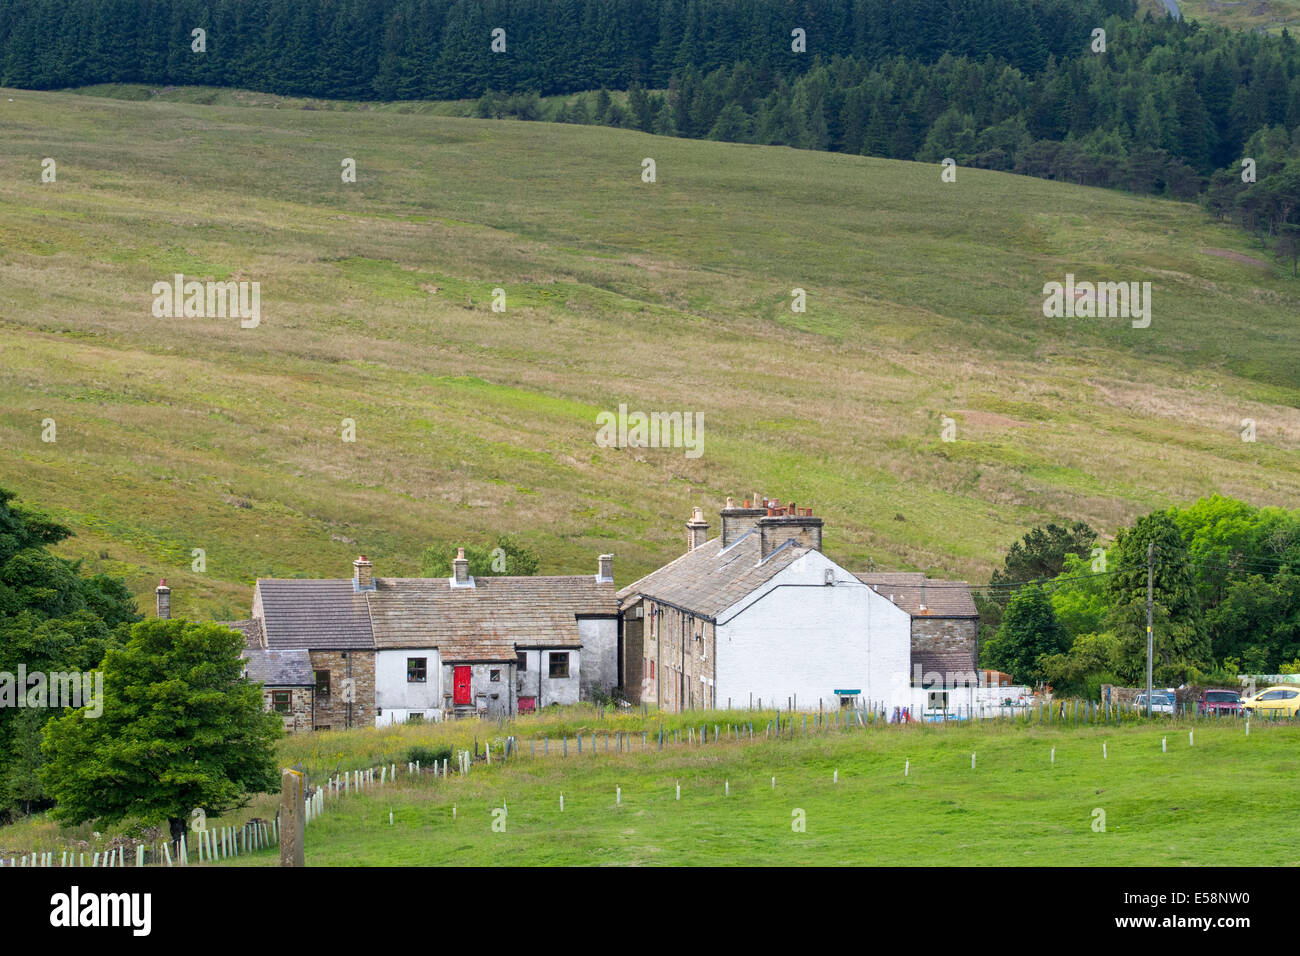 The old mining village on Nenthead near Alston in the North Pennines, Cumbria, UK. - Stock Image